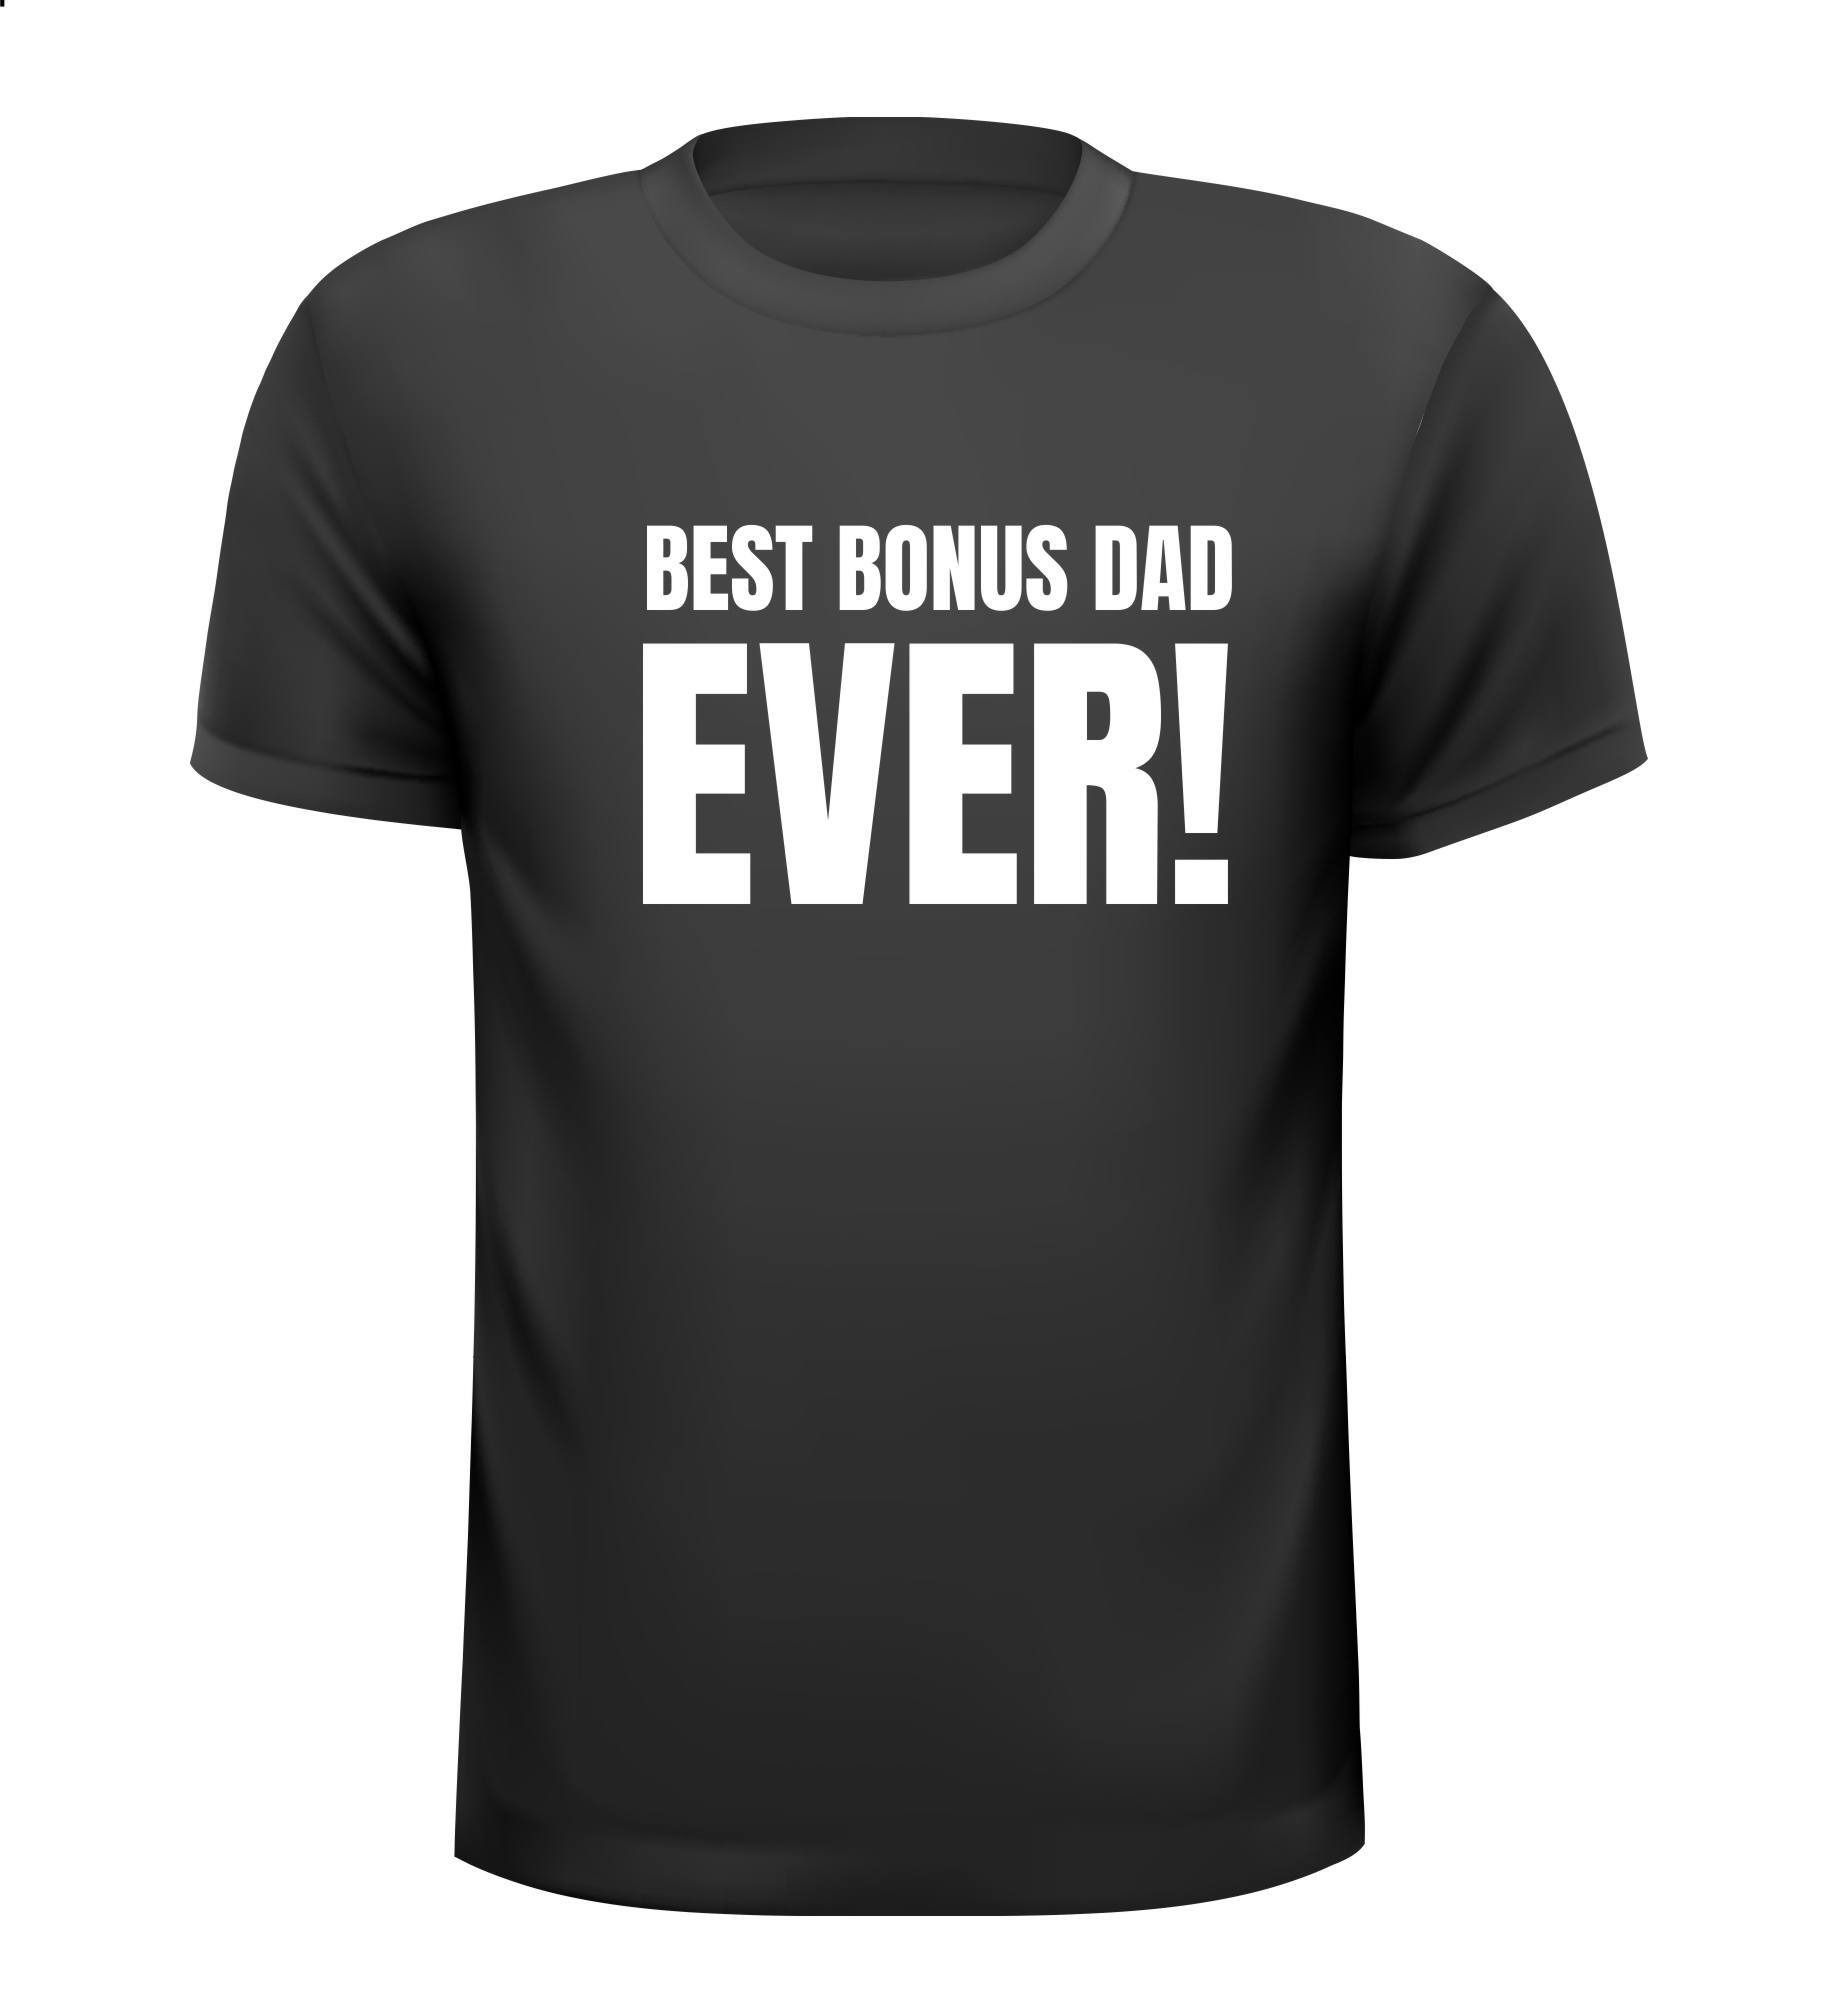 T-shirt best bonus dad ever Vaderdag cadeau